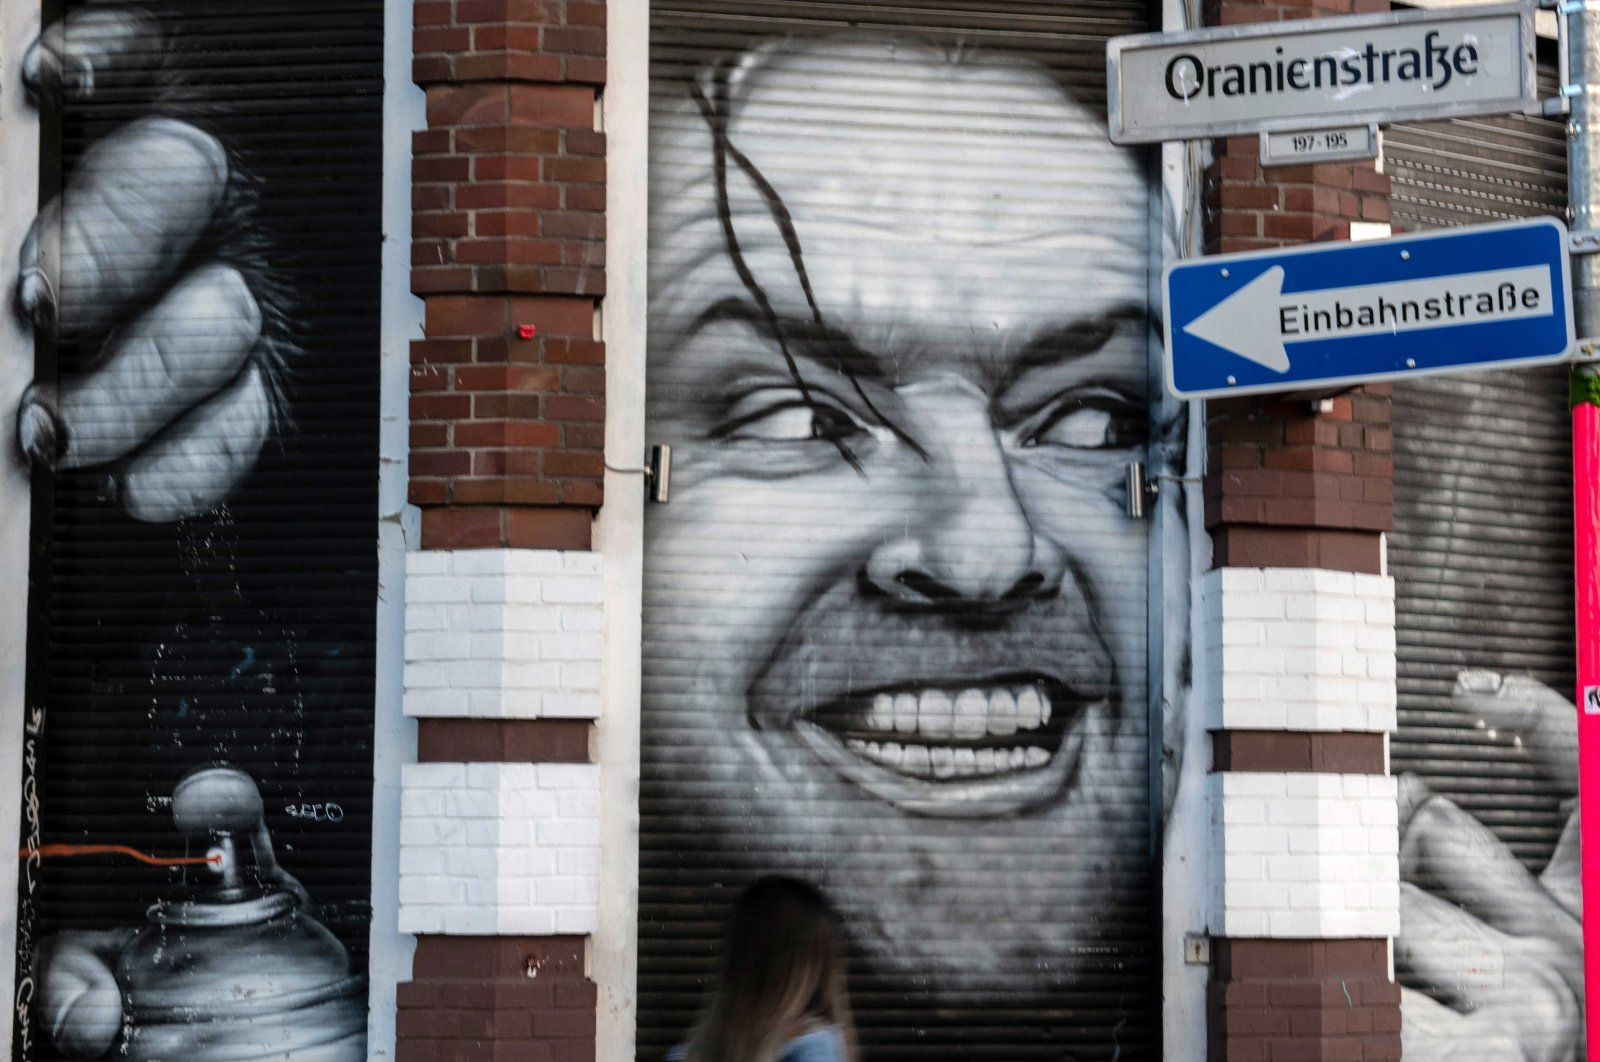 """A mural featuring actor Jack Nicholson from the film """"The Shining"""" can be seen on a Kreuzberg house wall, Berlin, Germany, May 13, 2019. (Getty Images)"""